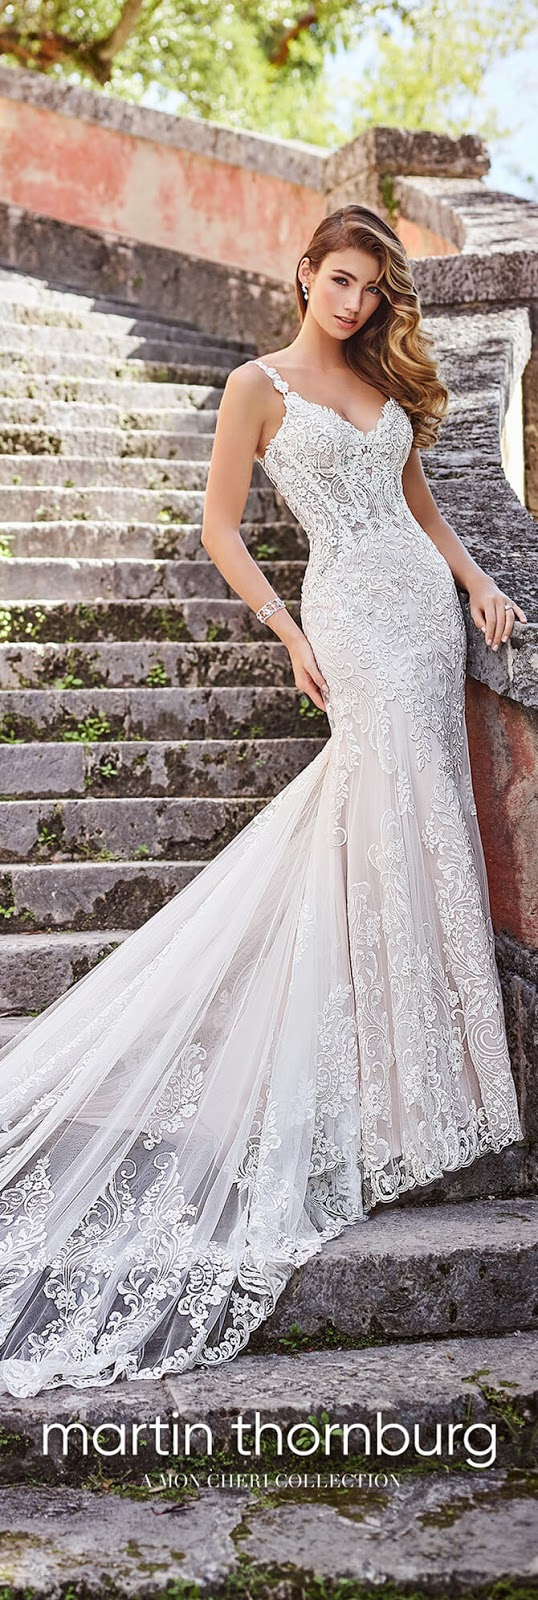 What is an optional reversible modesty piece for a bridal gown?